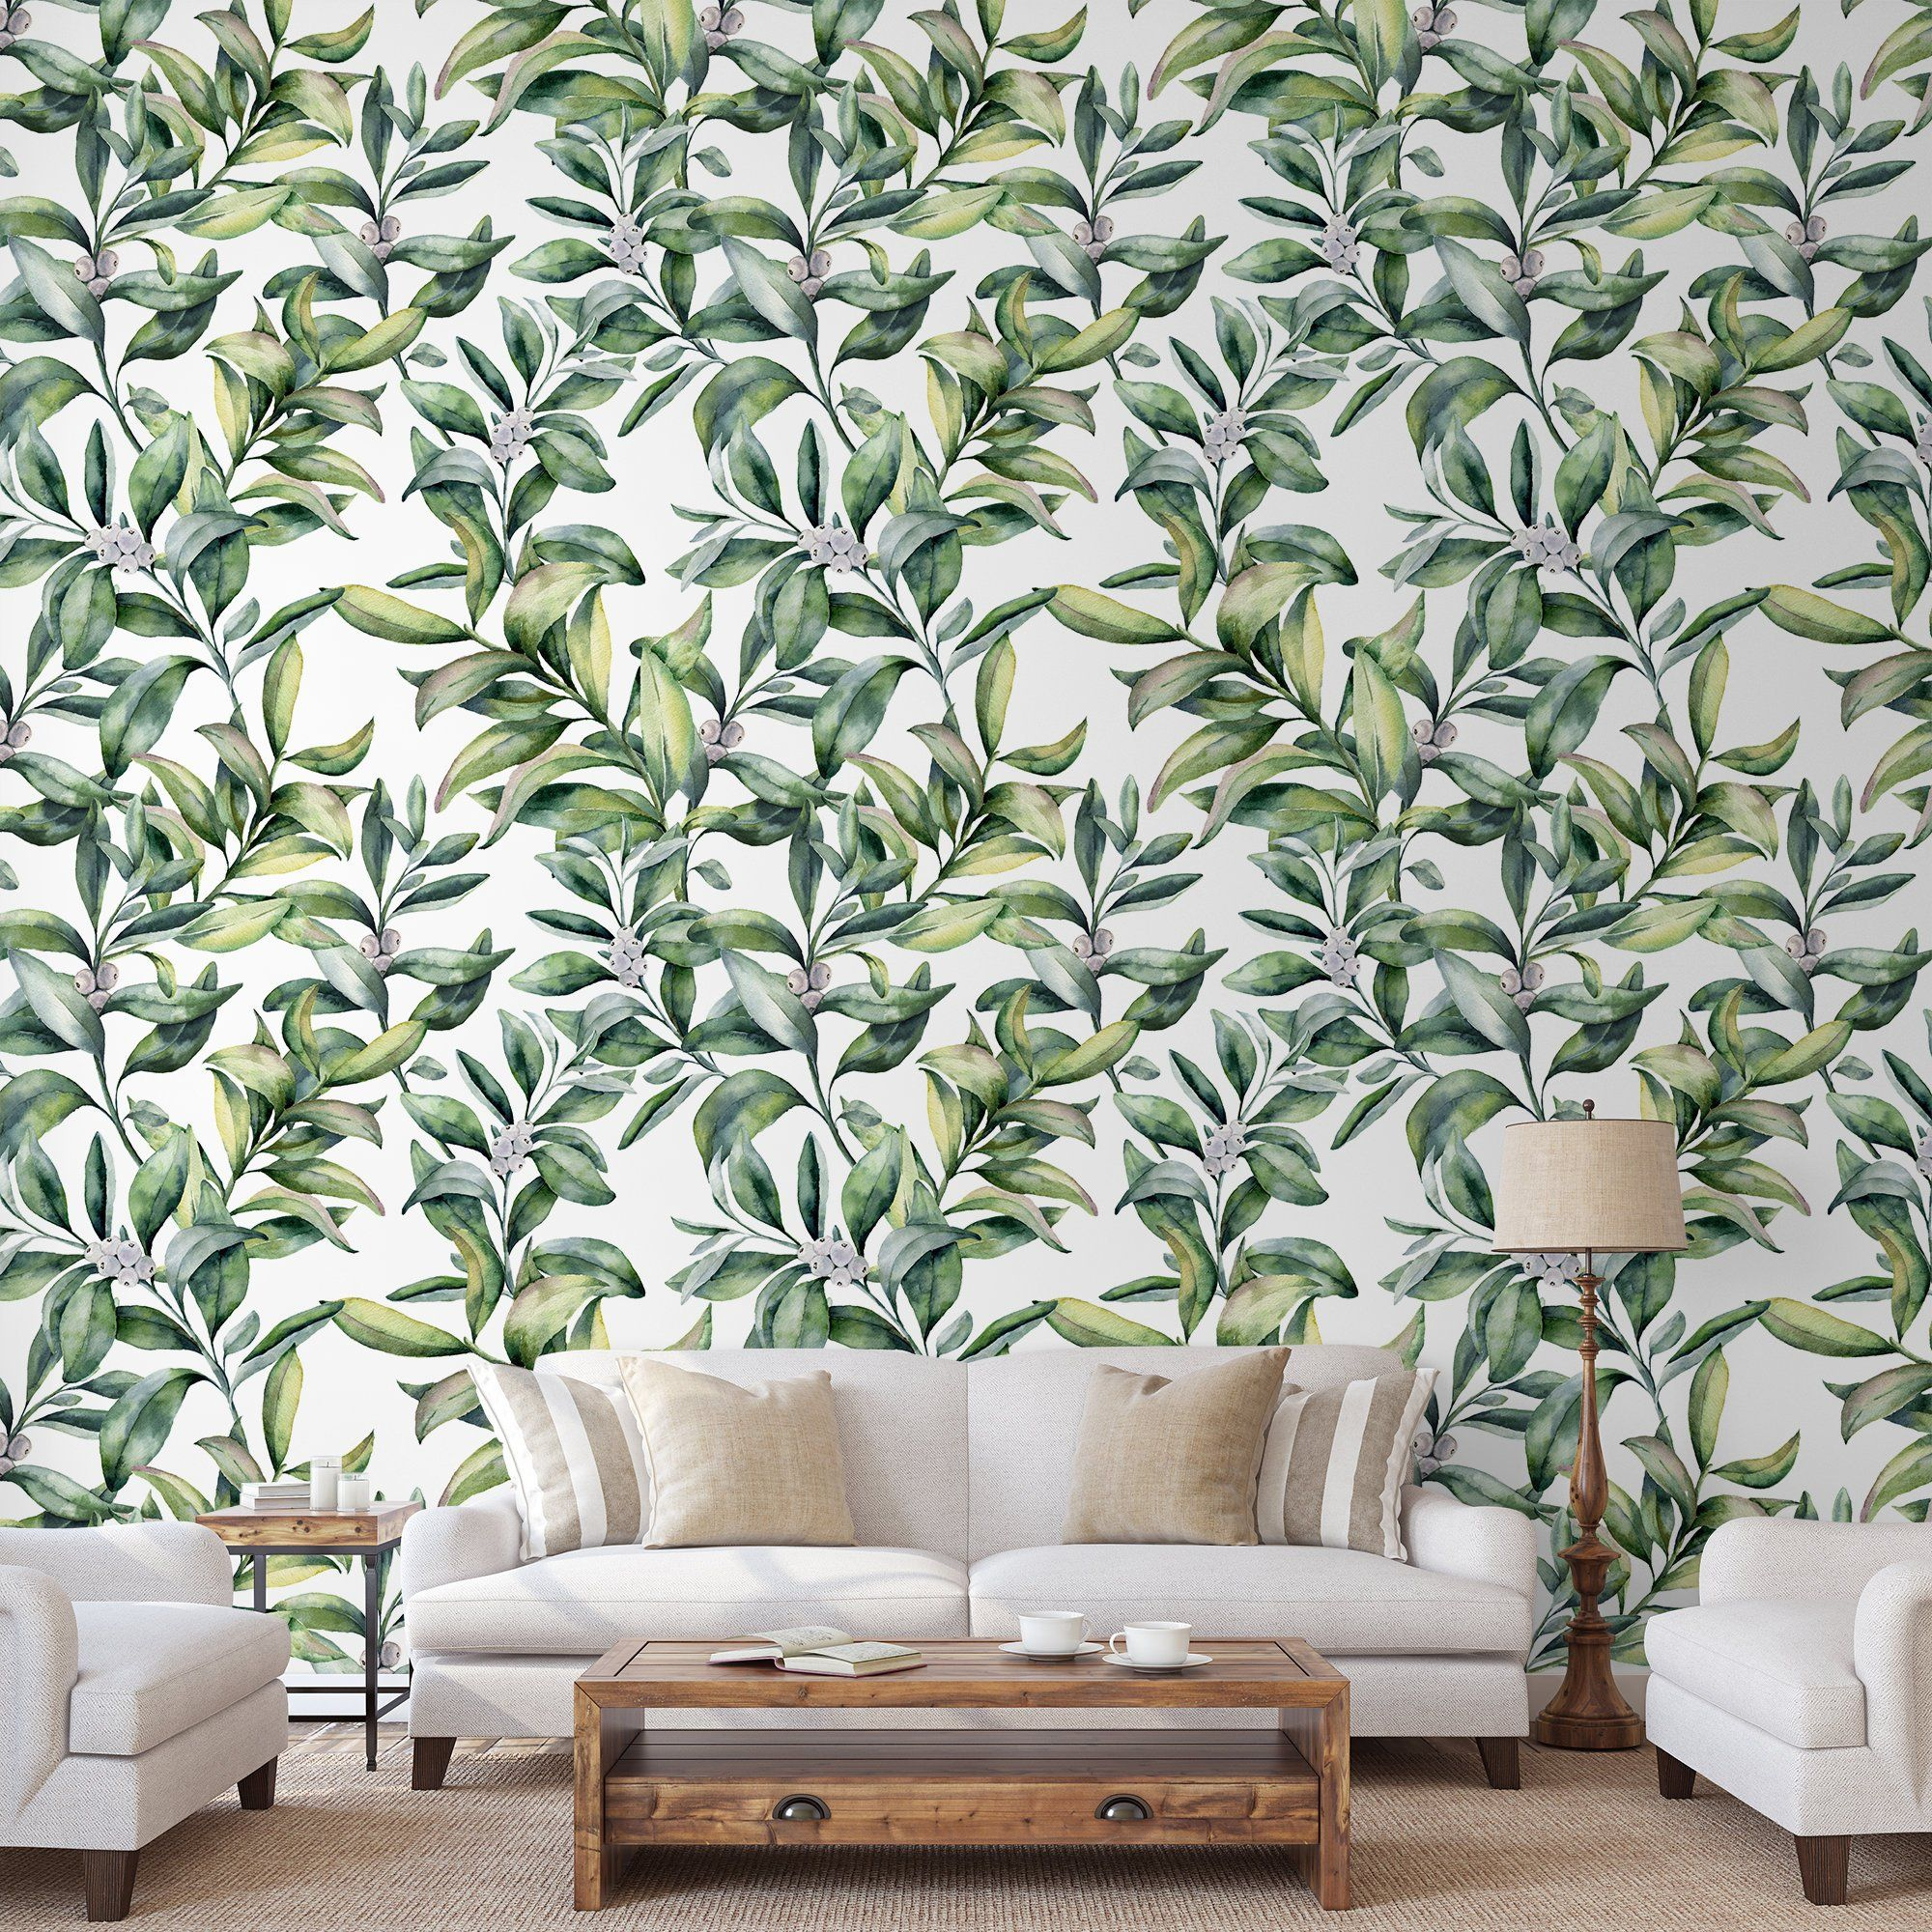 Berry Leaves Removable Wallpaper Winter Floral Self Adhesive Wall Mural Green Botanical Peel Stick Decal Watercolor Temporary Decor Removable Wallpaper Wallpaper Textured Walls